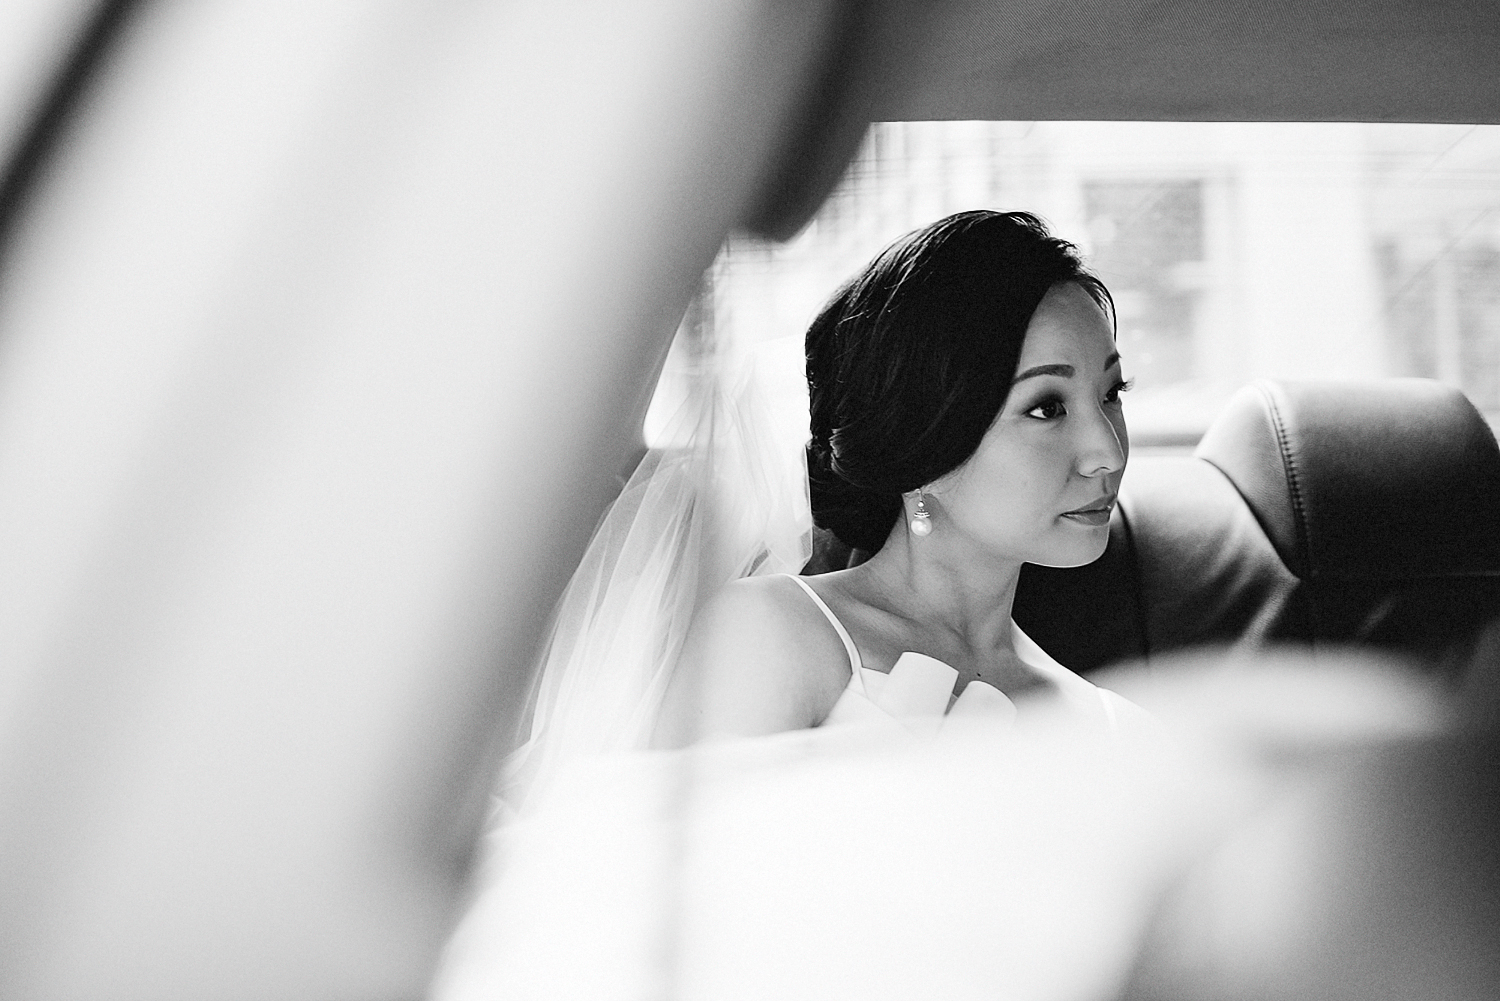 Best-Wedding-Photographers-Toronto_-Urban-City-Wedding-Photography-Downtown-Toronto-Photographer_Vintage-Bride-and-Groom-Details_The-Chase-Wedding-Venue_Candid-Photojournalistic-Documentary-Epic-First-Look-Bride-Taxi-Cab.jpg